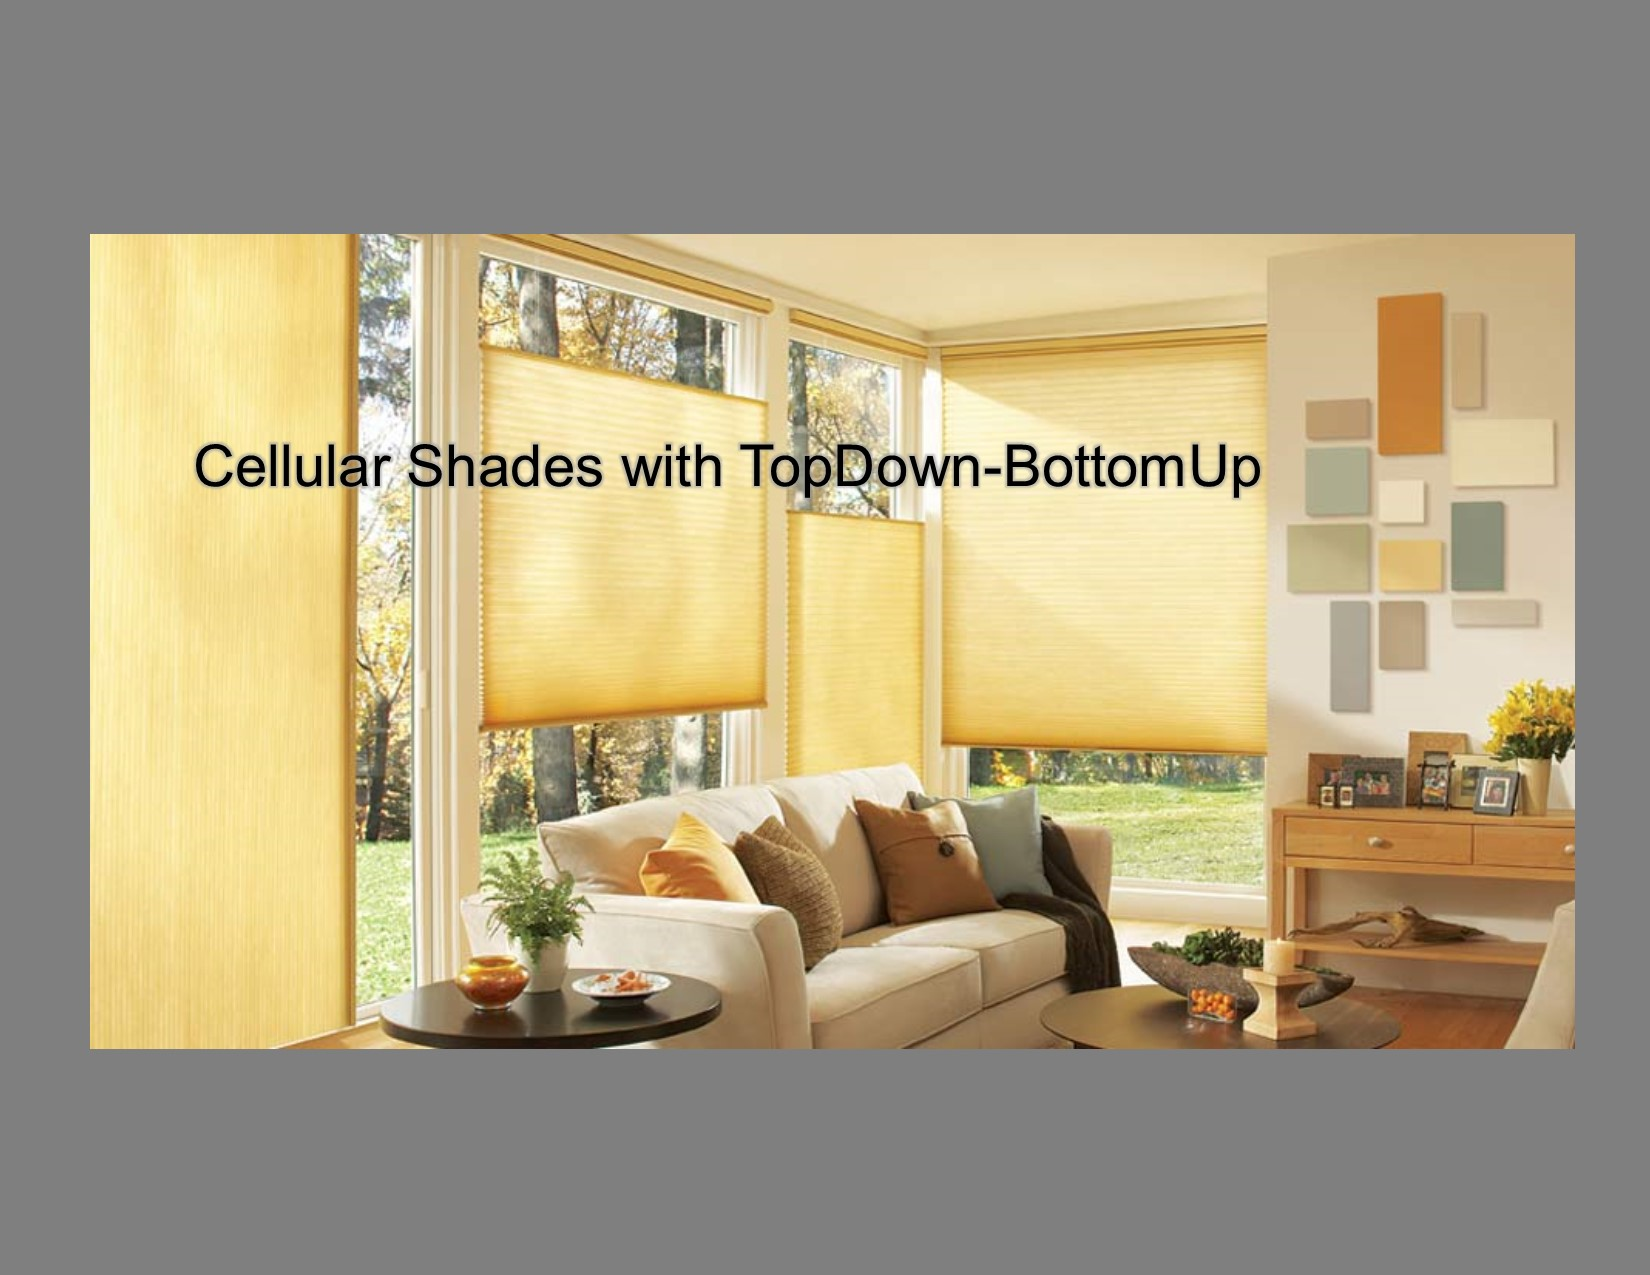 Cellular_Shades_with_TopDown-BottomUp.jpg